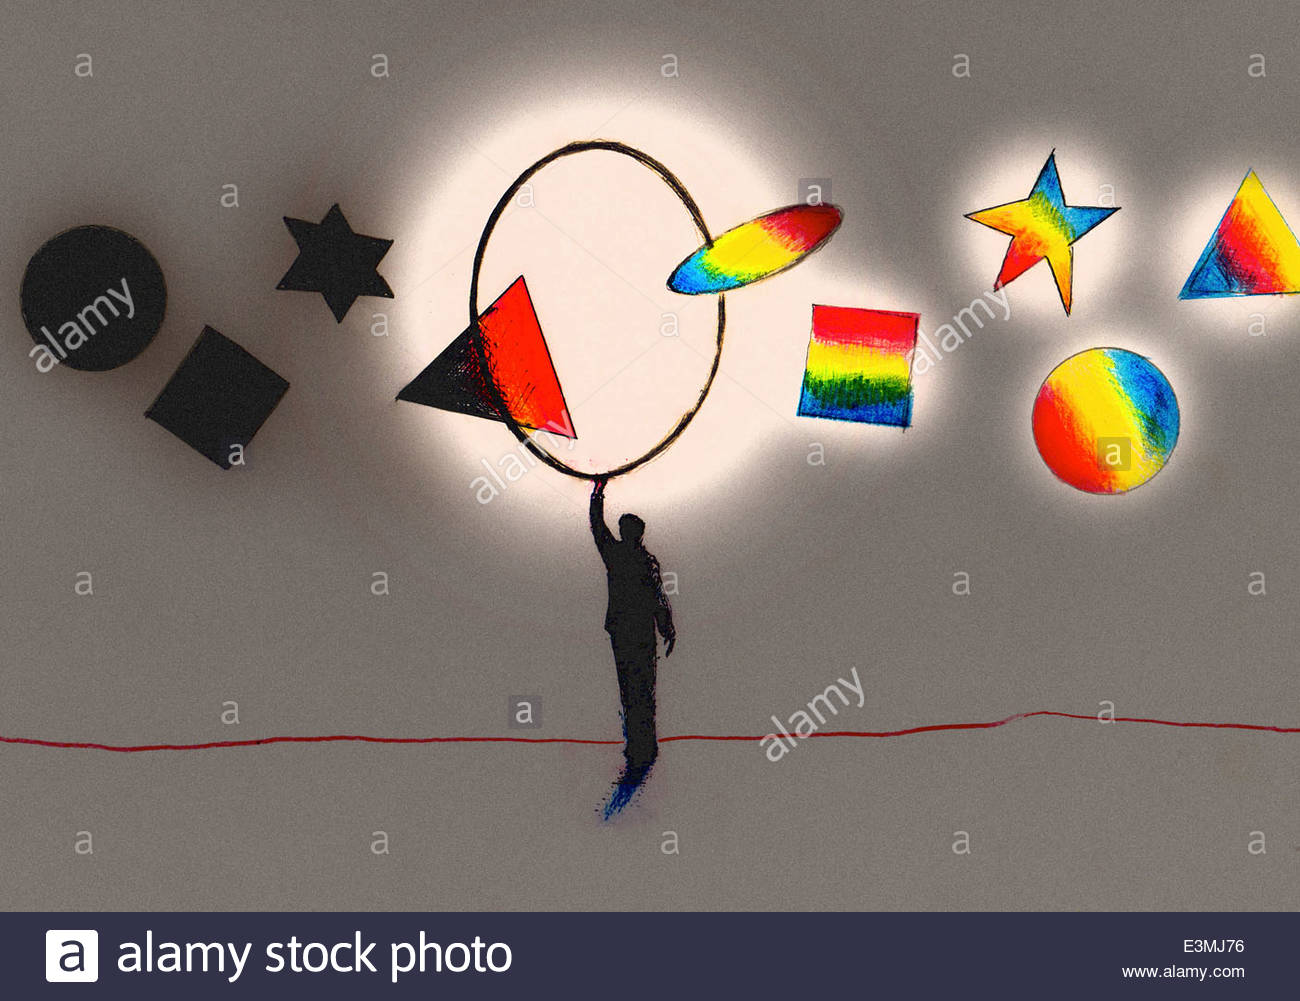 Geometric shapes changing from dark to light as move through hoop held by man - Stock Image